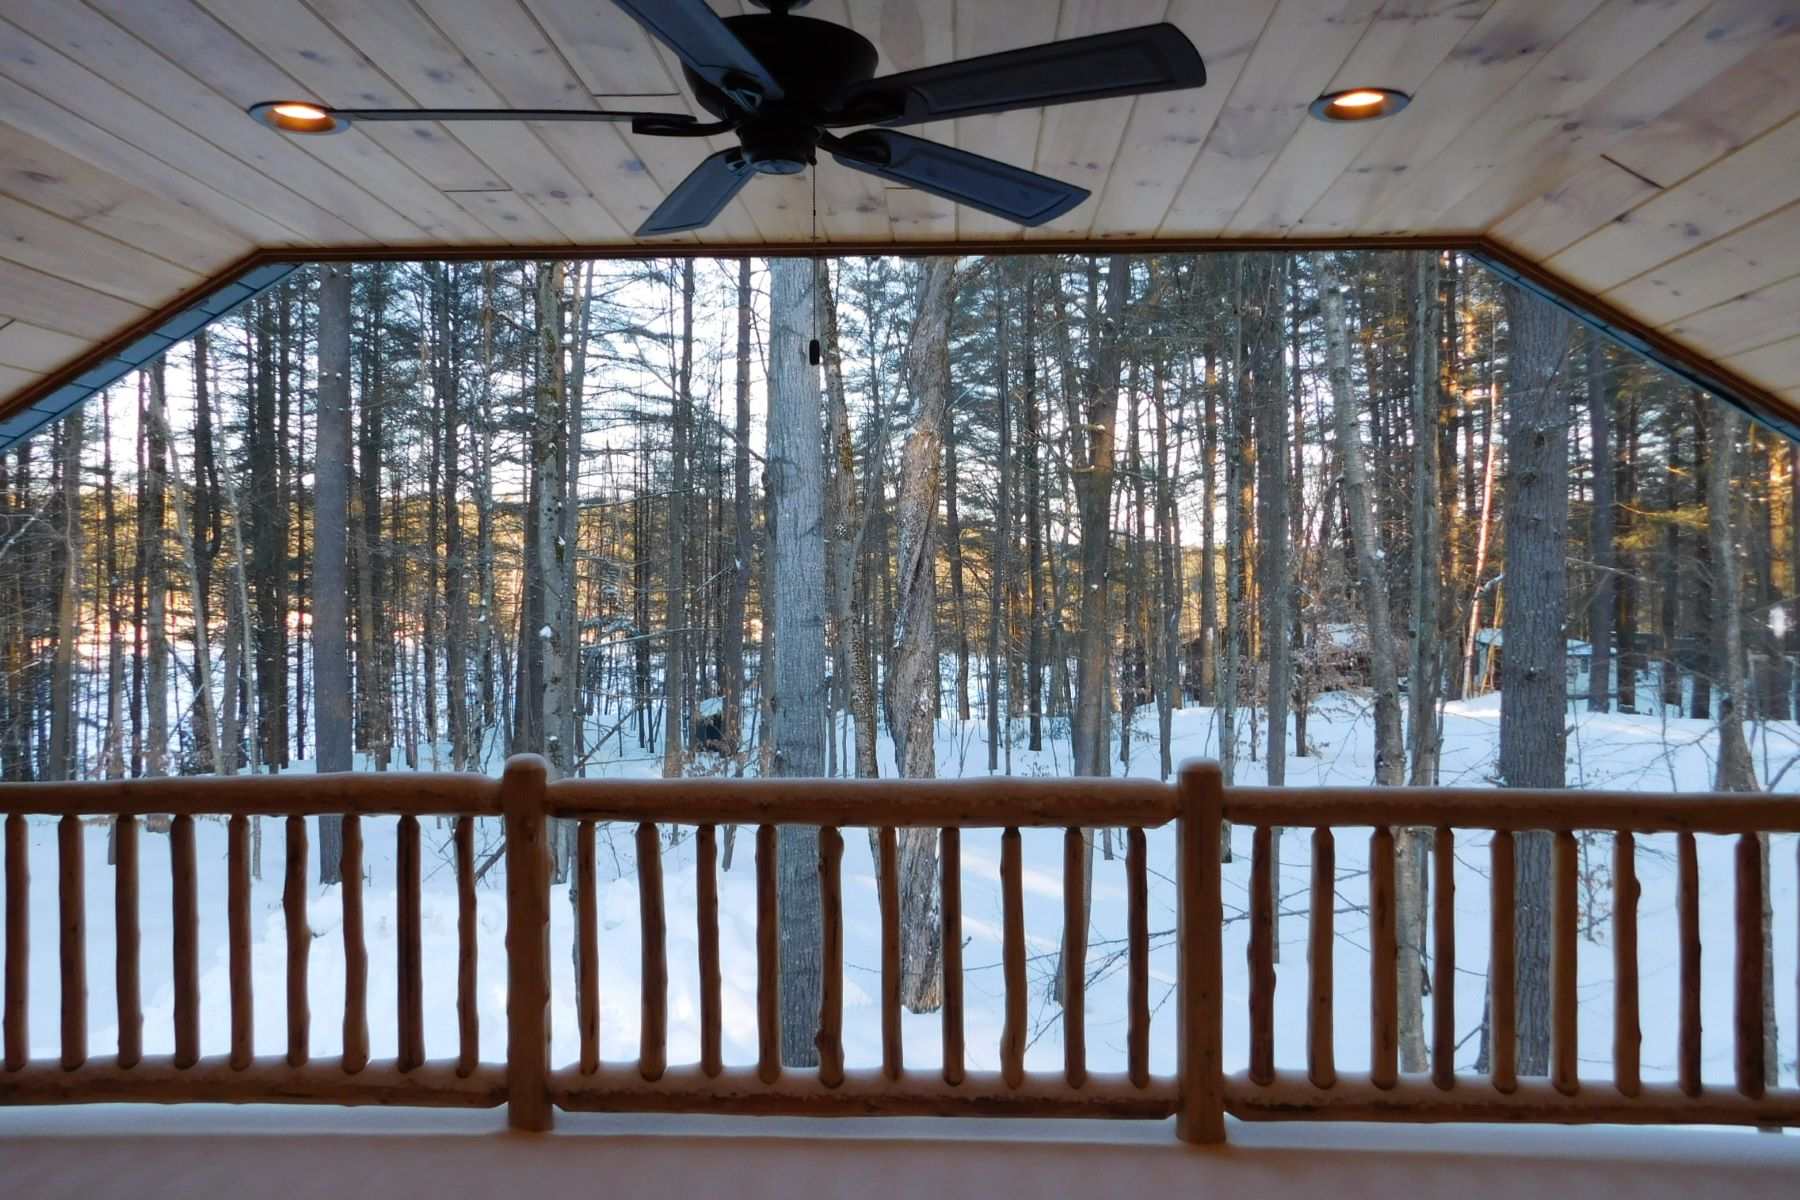 Additional photo for property listing at 6383 Moos Pines Rd, Glenfield New York, 13343 6383 Moose Pines Rd Glenfield, New York 13343 United States